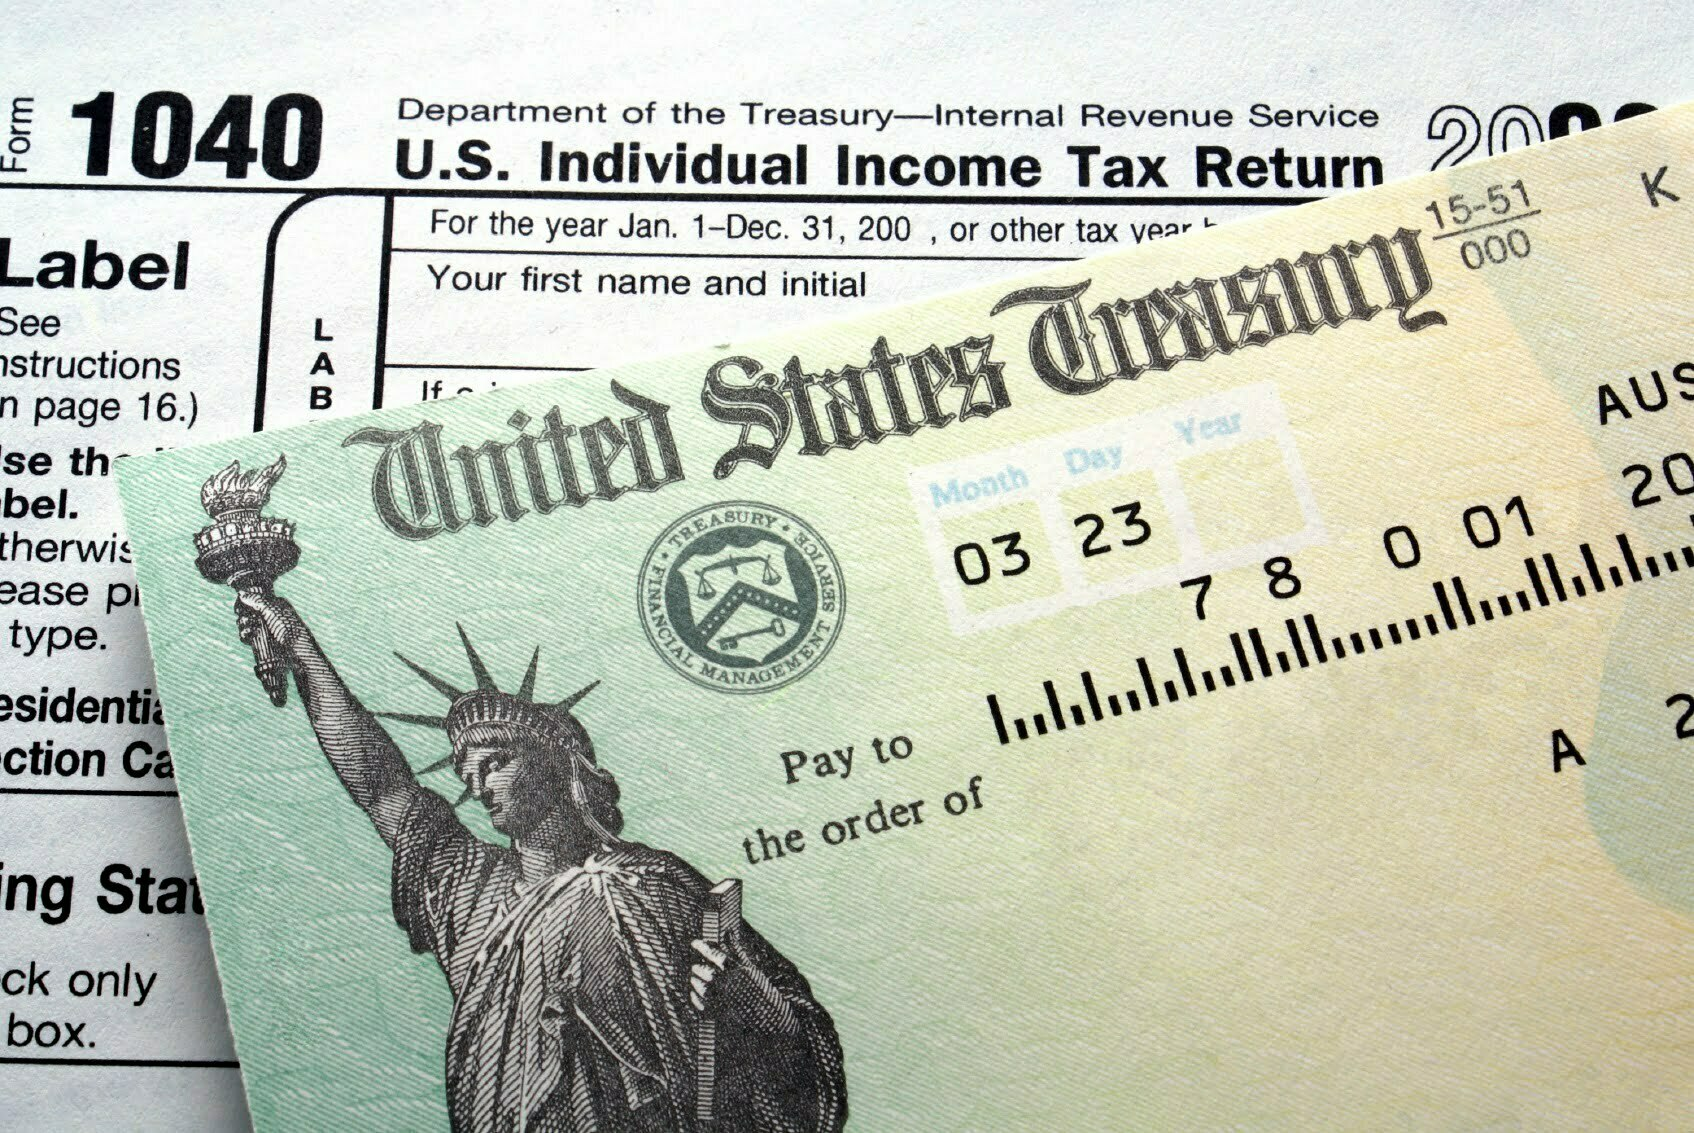 Tax Fraud: Rodrigo Pablo, Ashrf Mohammed Aly, Minon Miller And Lewis Jefferson Jr. Sentence For Fraudulent Income Tax Returns